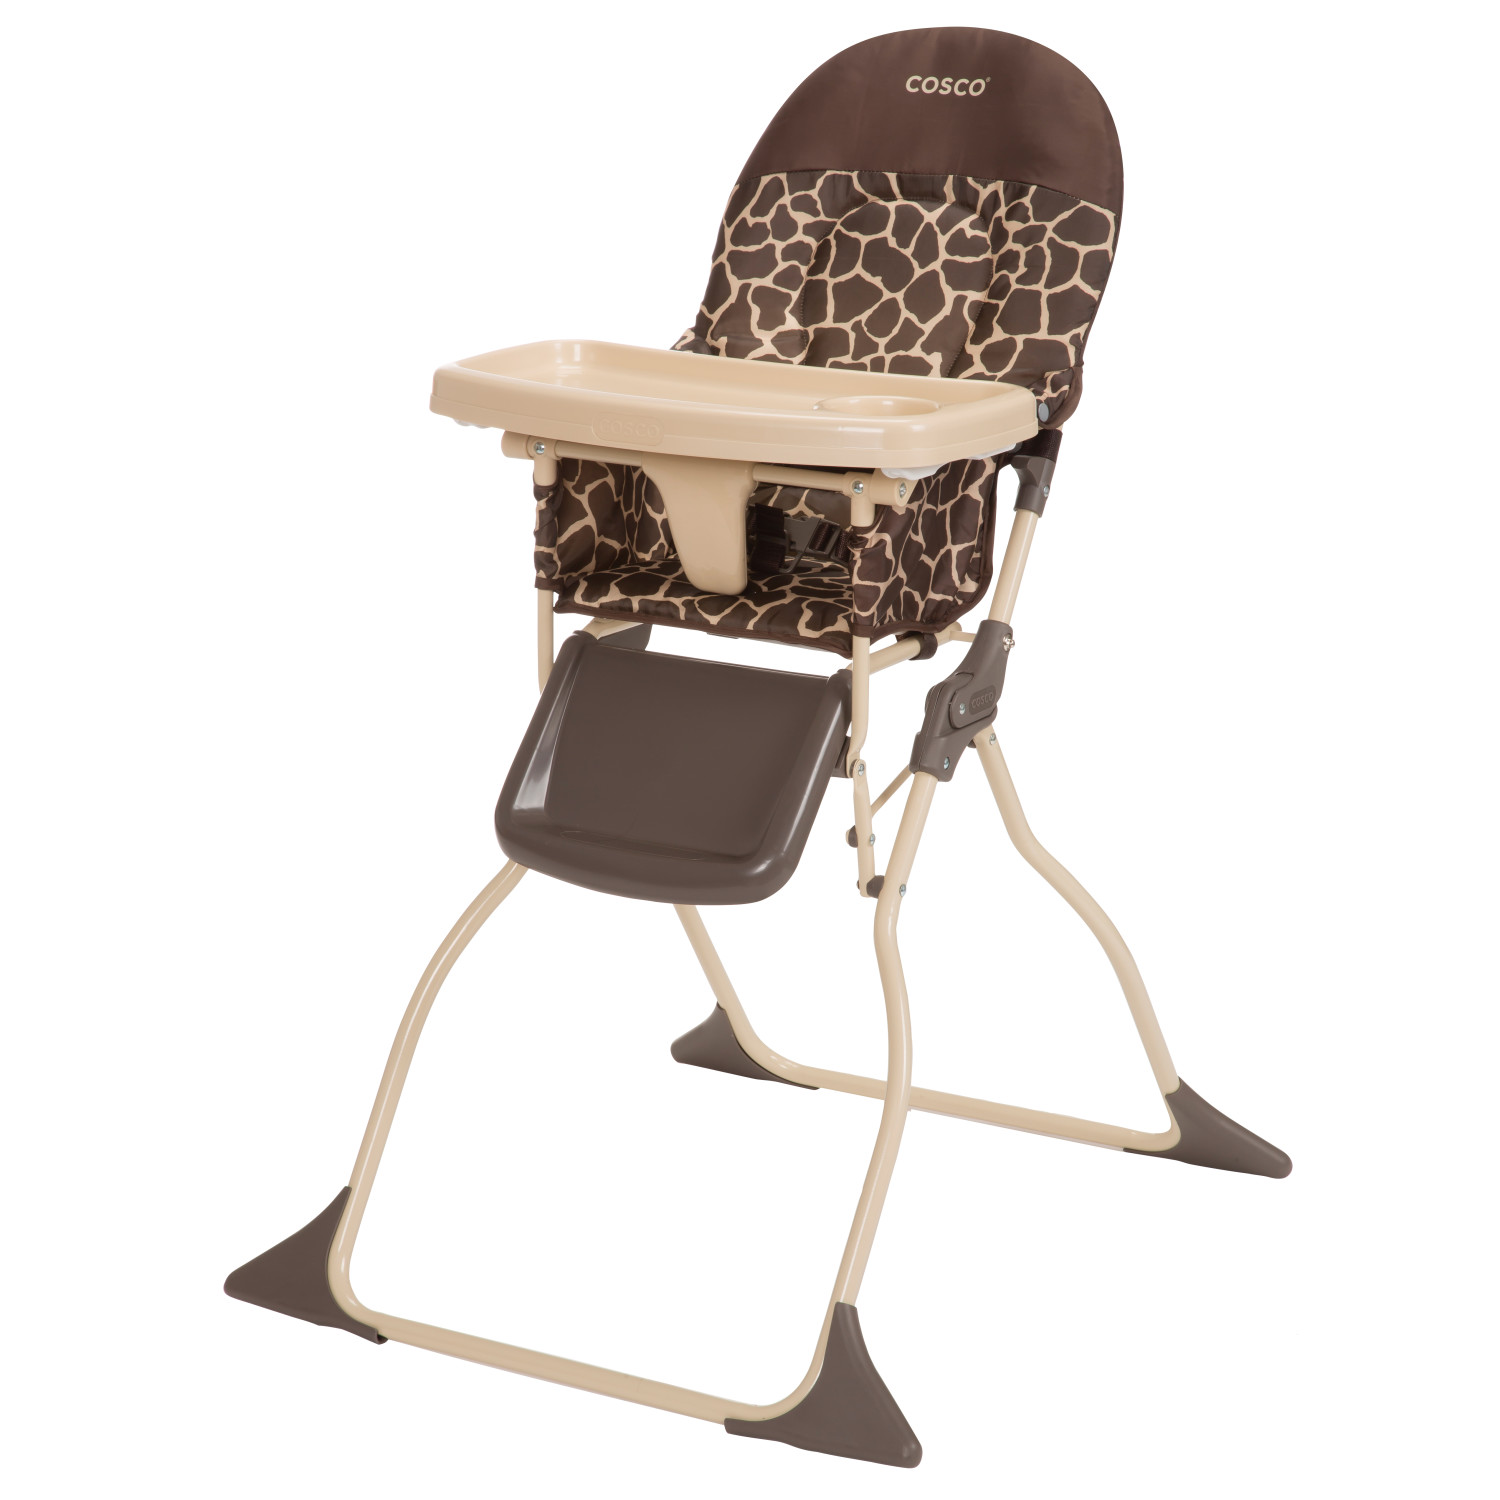 cosco baby chair captain chairs for boats simple fold high ebay